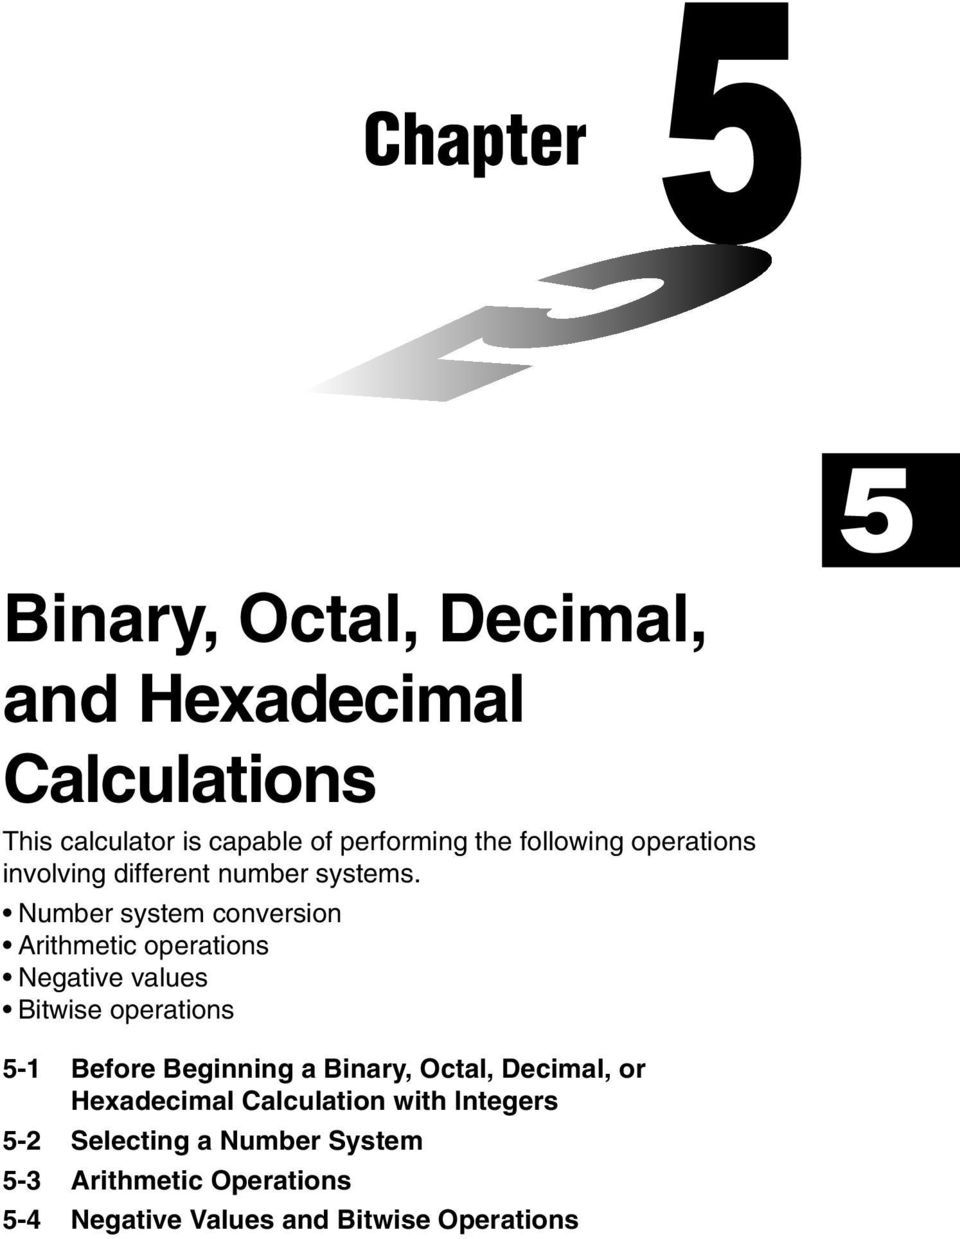 Chapter Binary, Octal, Decimal, and Hexadecimal Calculations